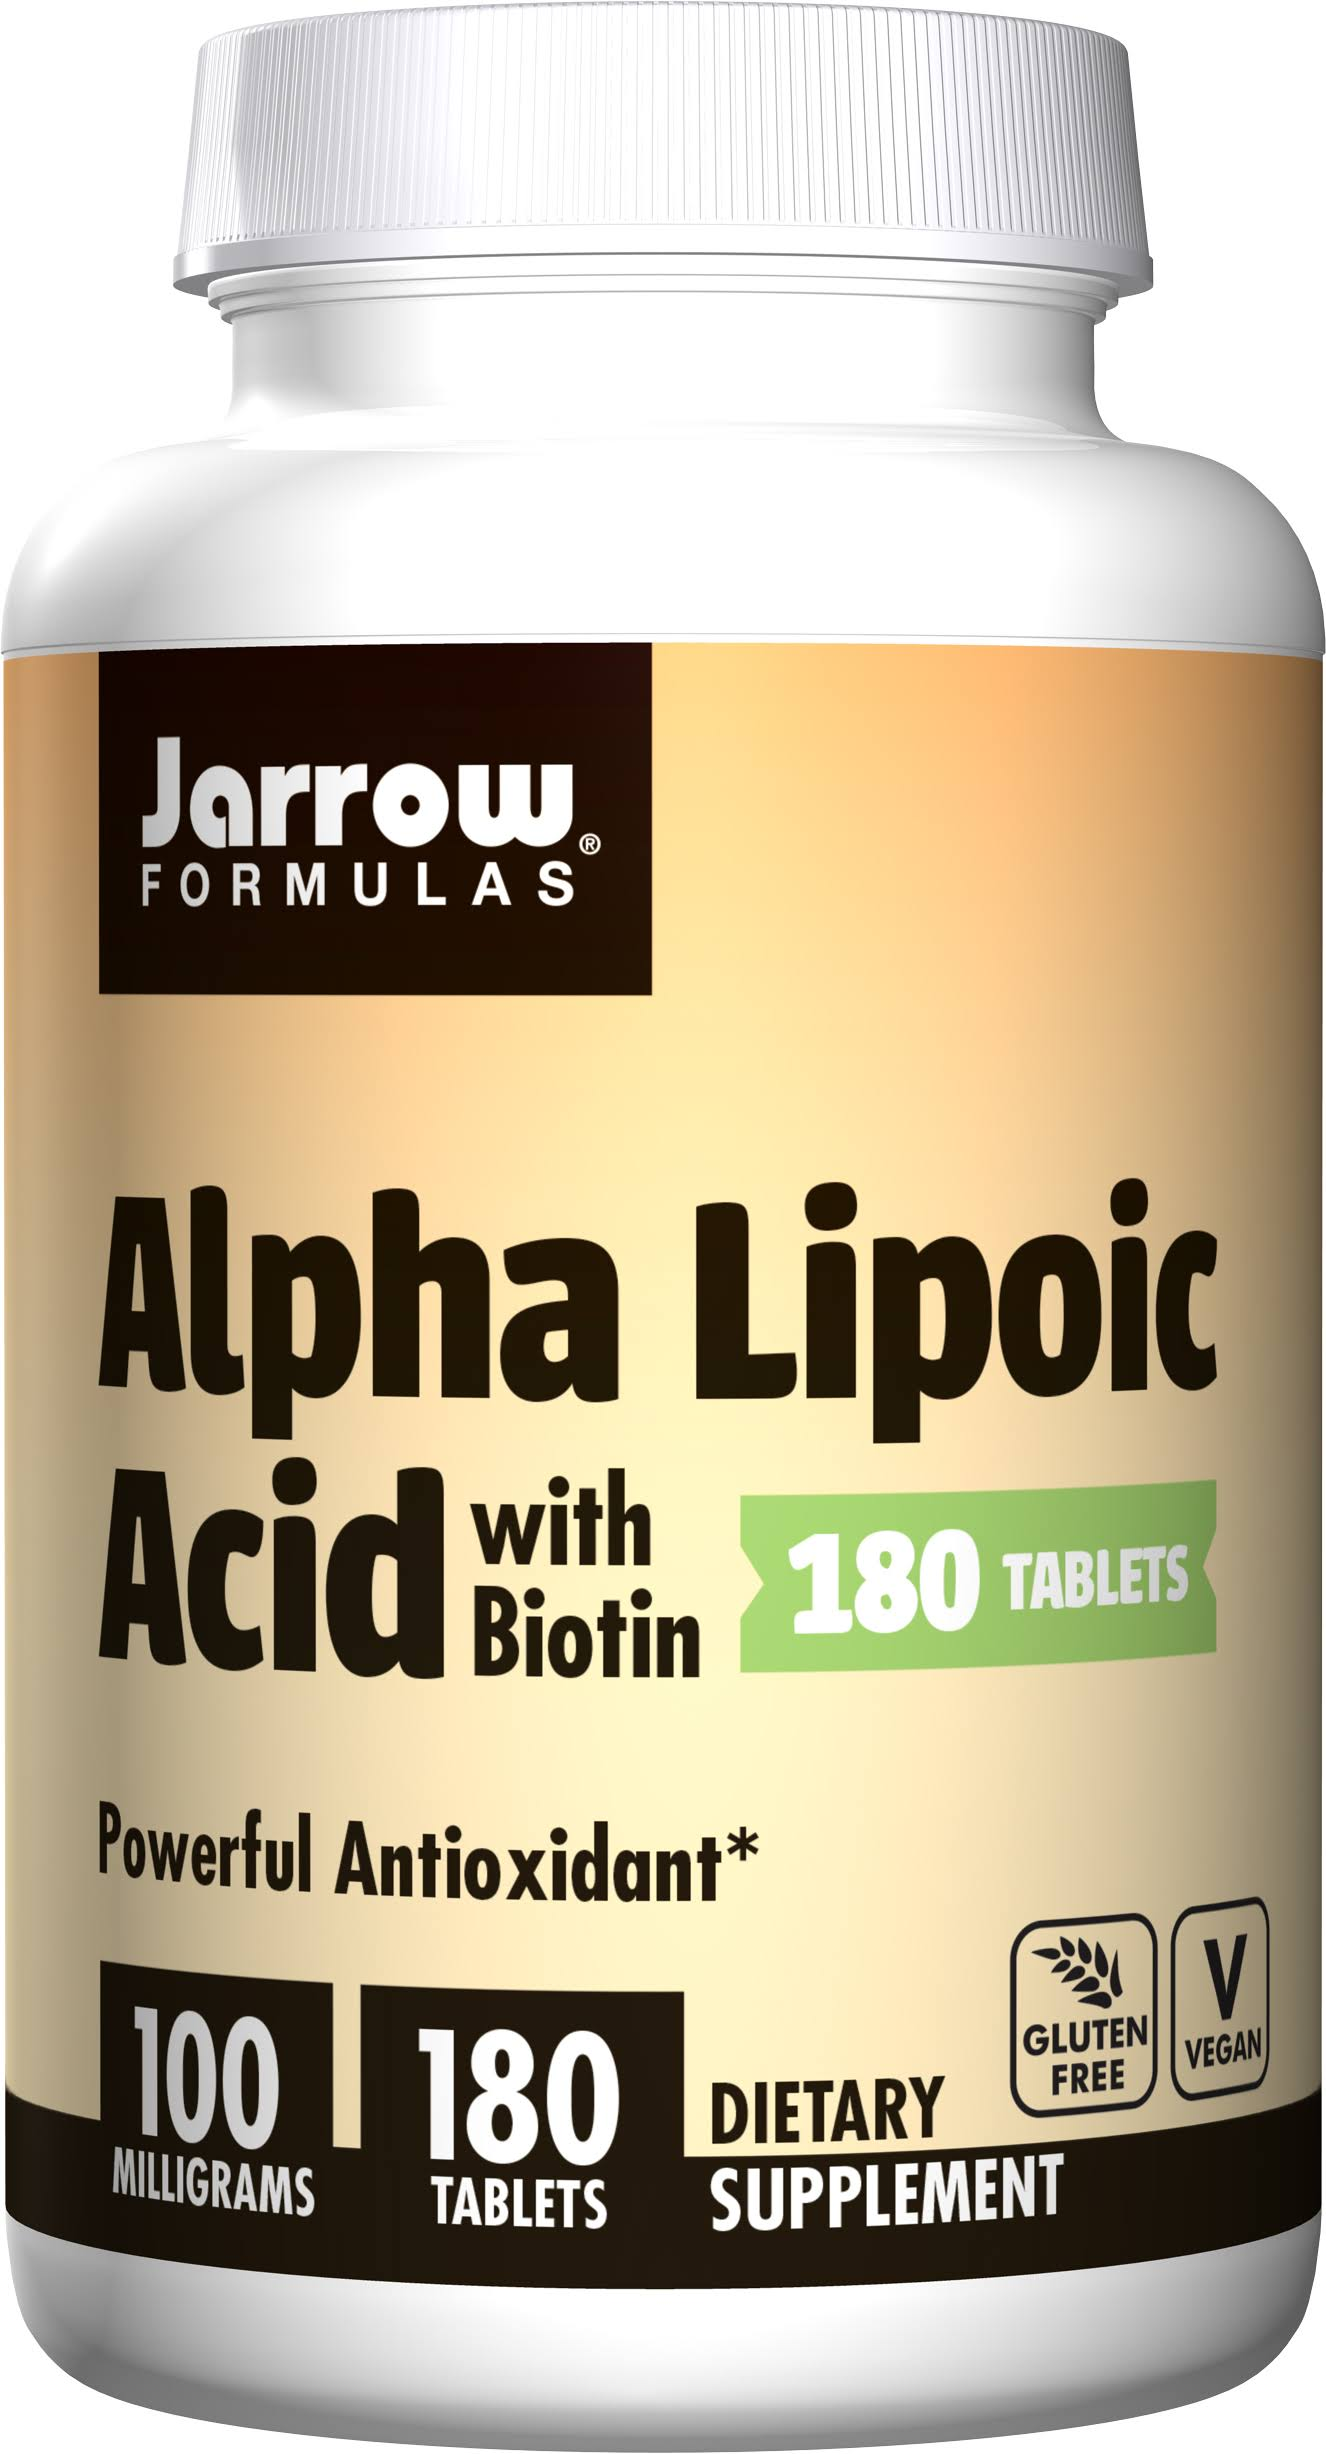 Jarrow Formulas Alpha Lipoic Acid with Biotin Supplement - 180 Tablets